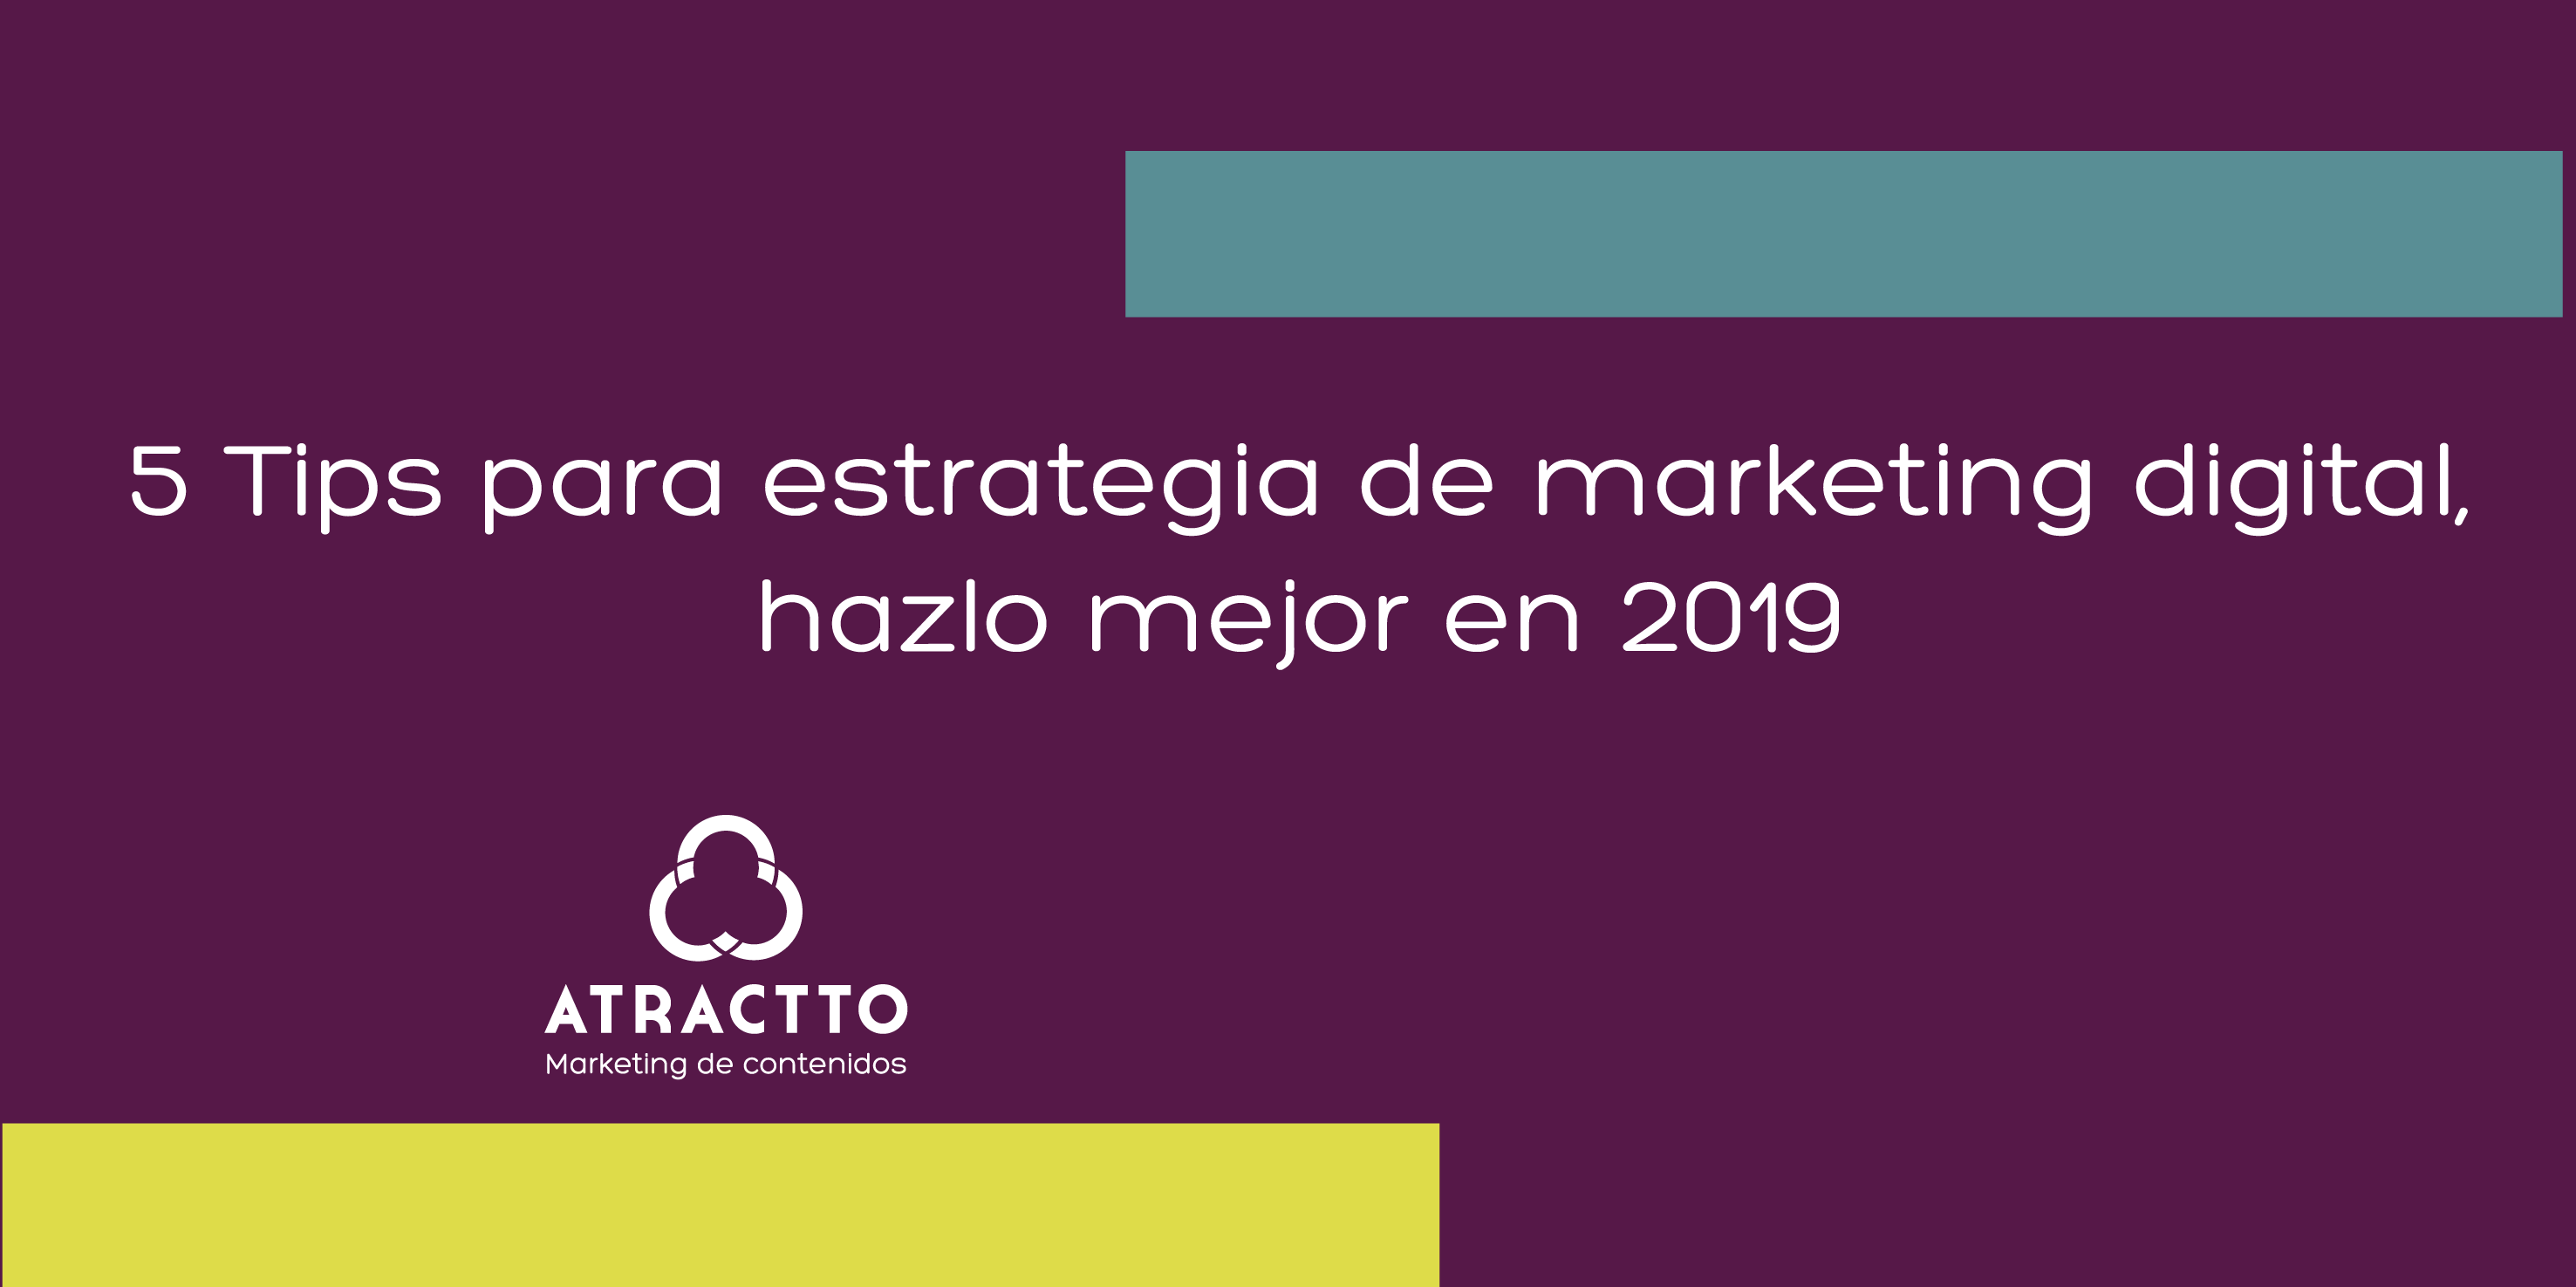 tips para estrategia de marketing digital